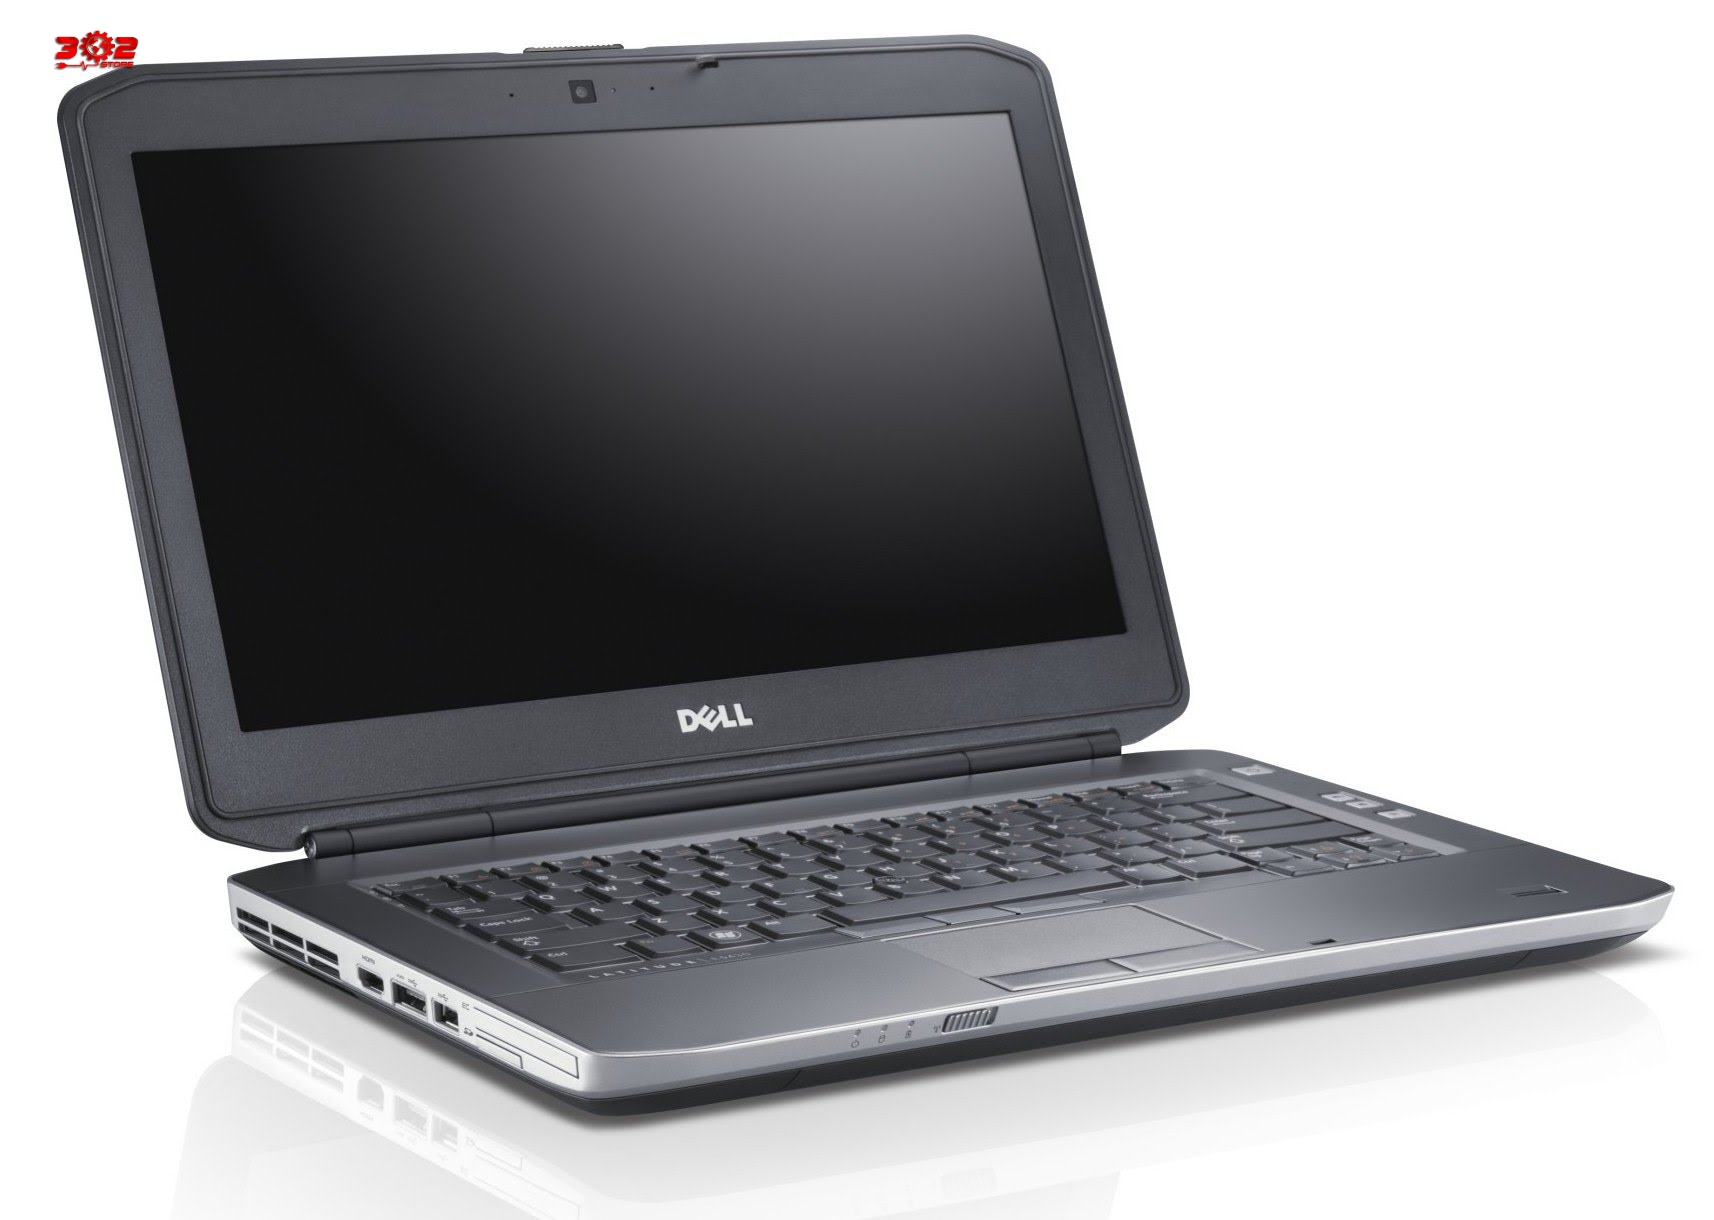 DELL LATITUDE E5430 I5 GEN 3 RAM 4GB-250GB